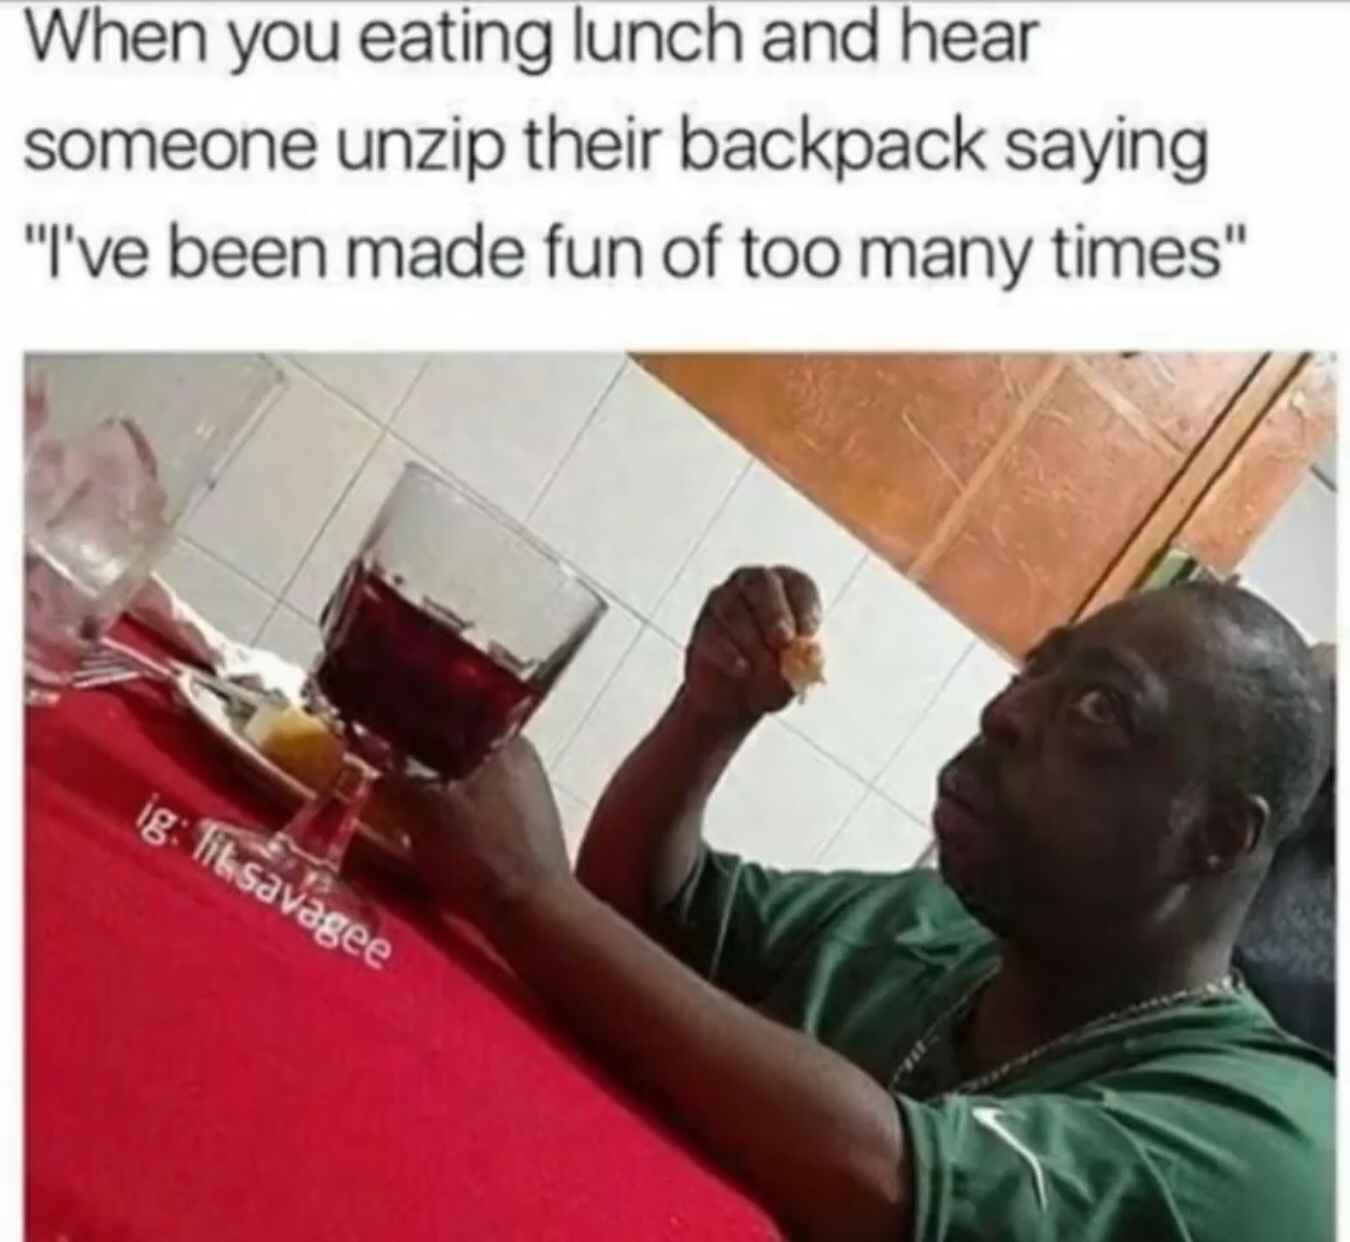 I would finish eating - meme